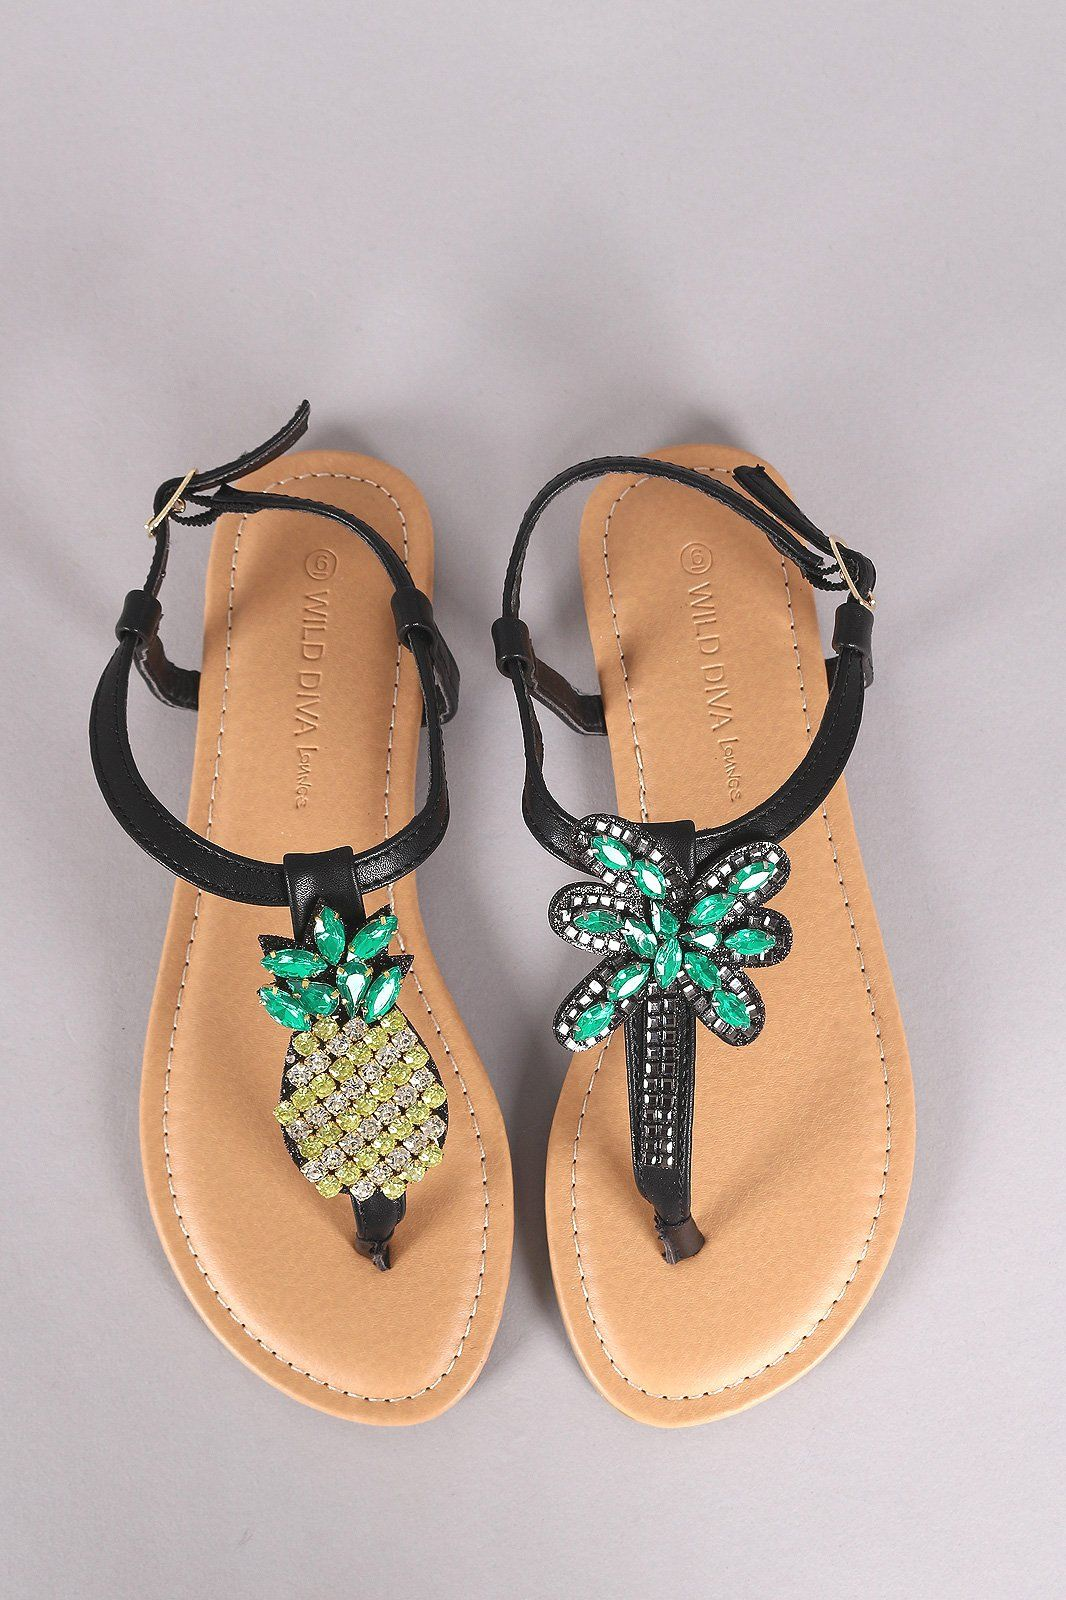 12904e6600c This flat sandal features a T-strap design with mismatched rhinestone- embellished pineapple tree